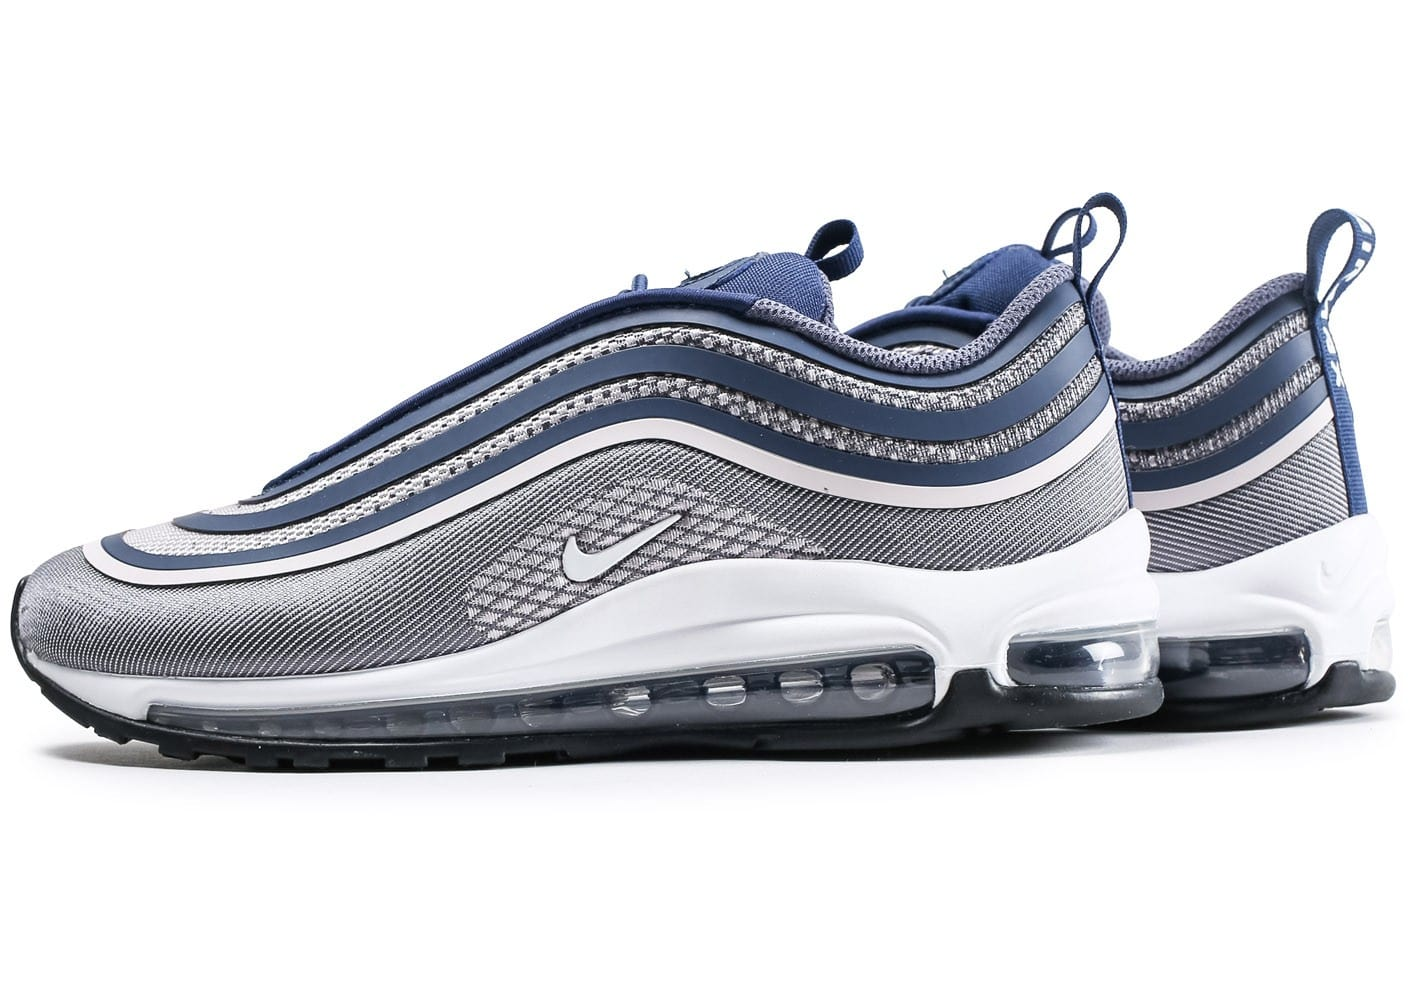 air max 97 femme bleu marine Outlet Vente Authentique - kiwie.fr